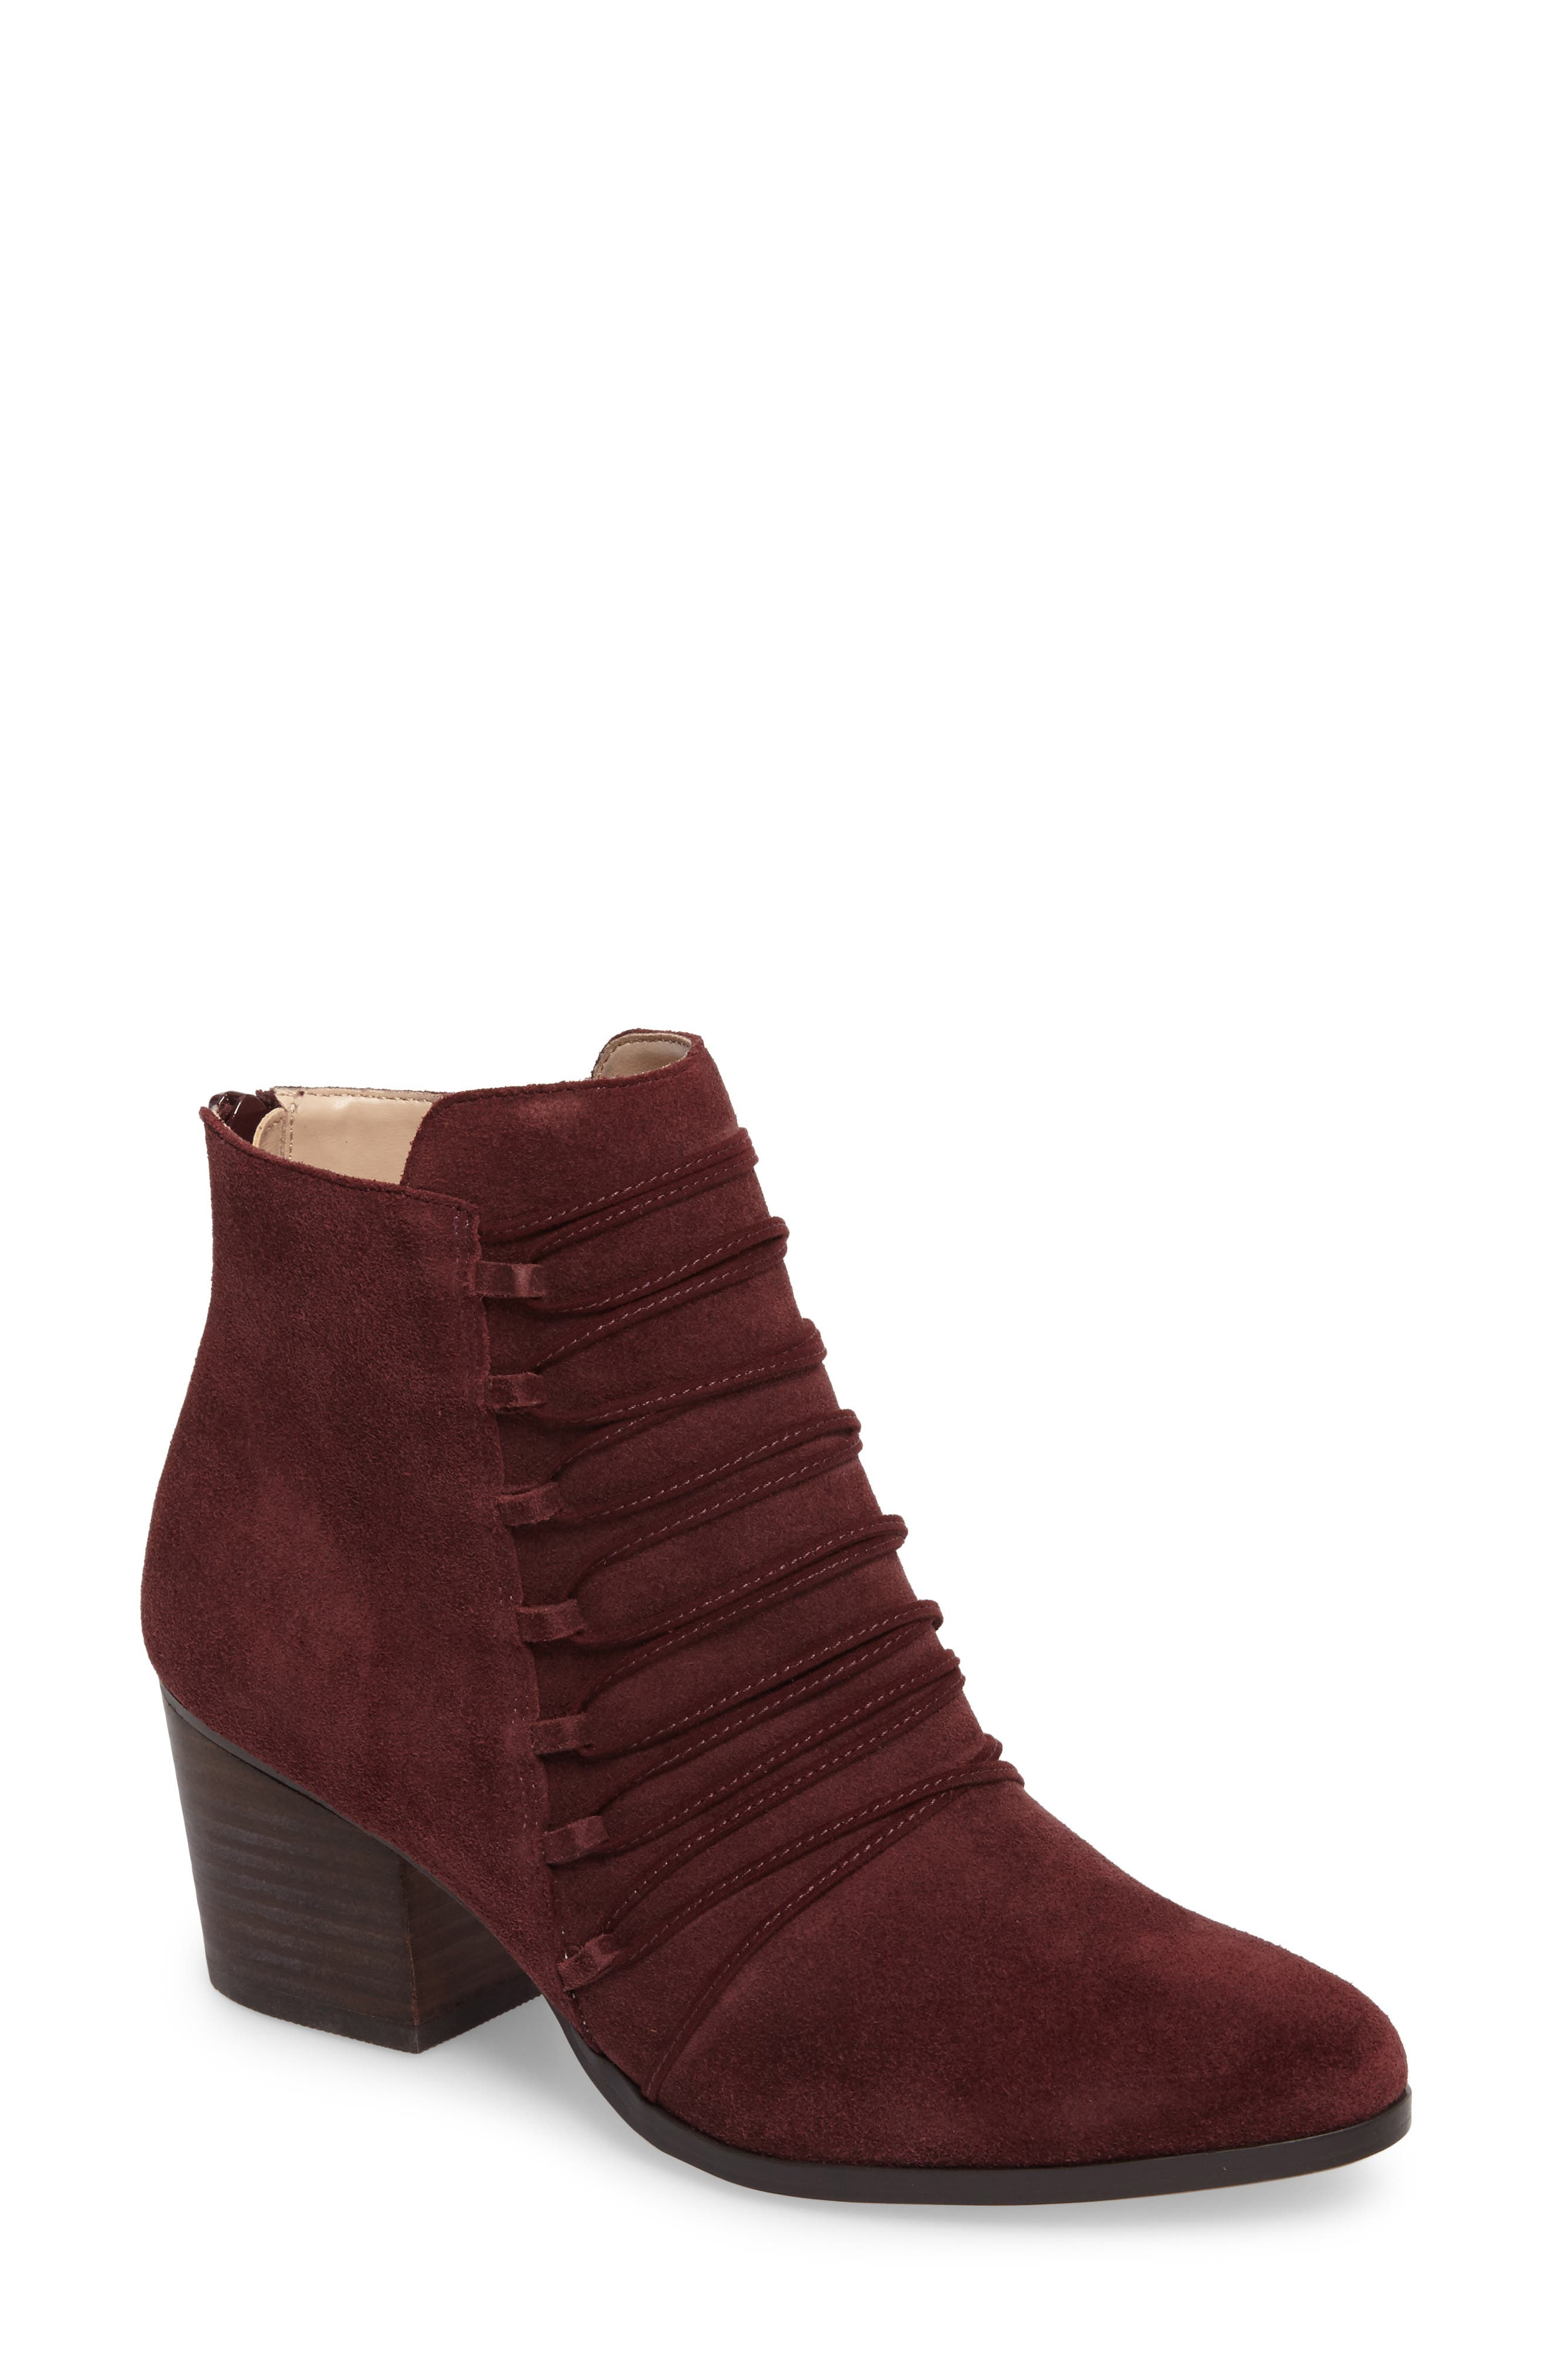 Main Image - Sole Society Bellevue Bootie (Women)